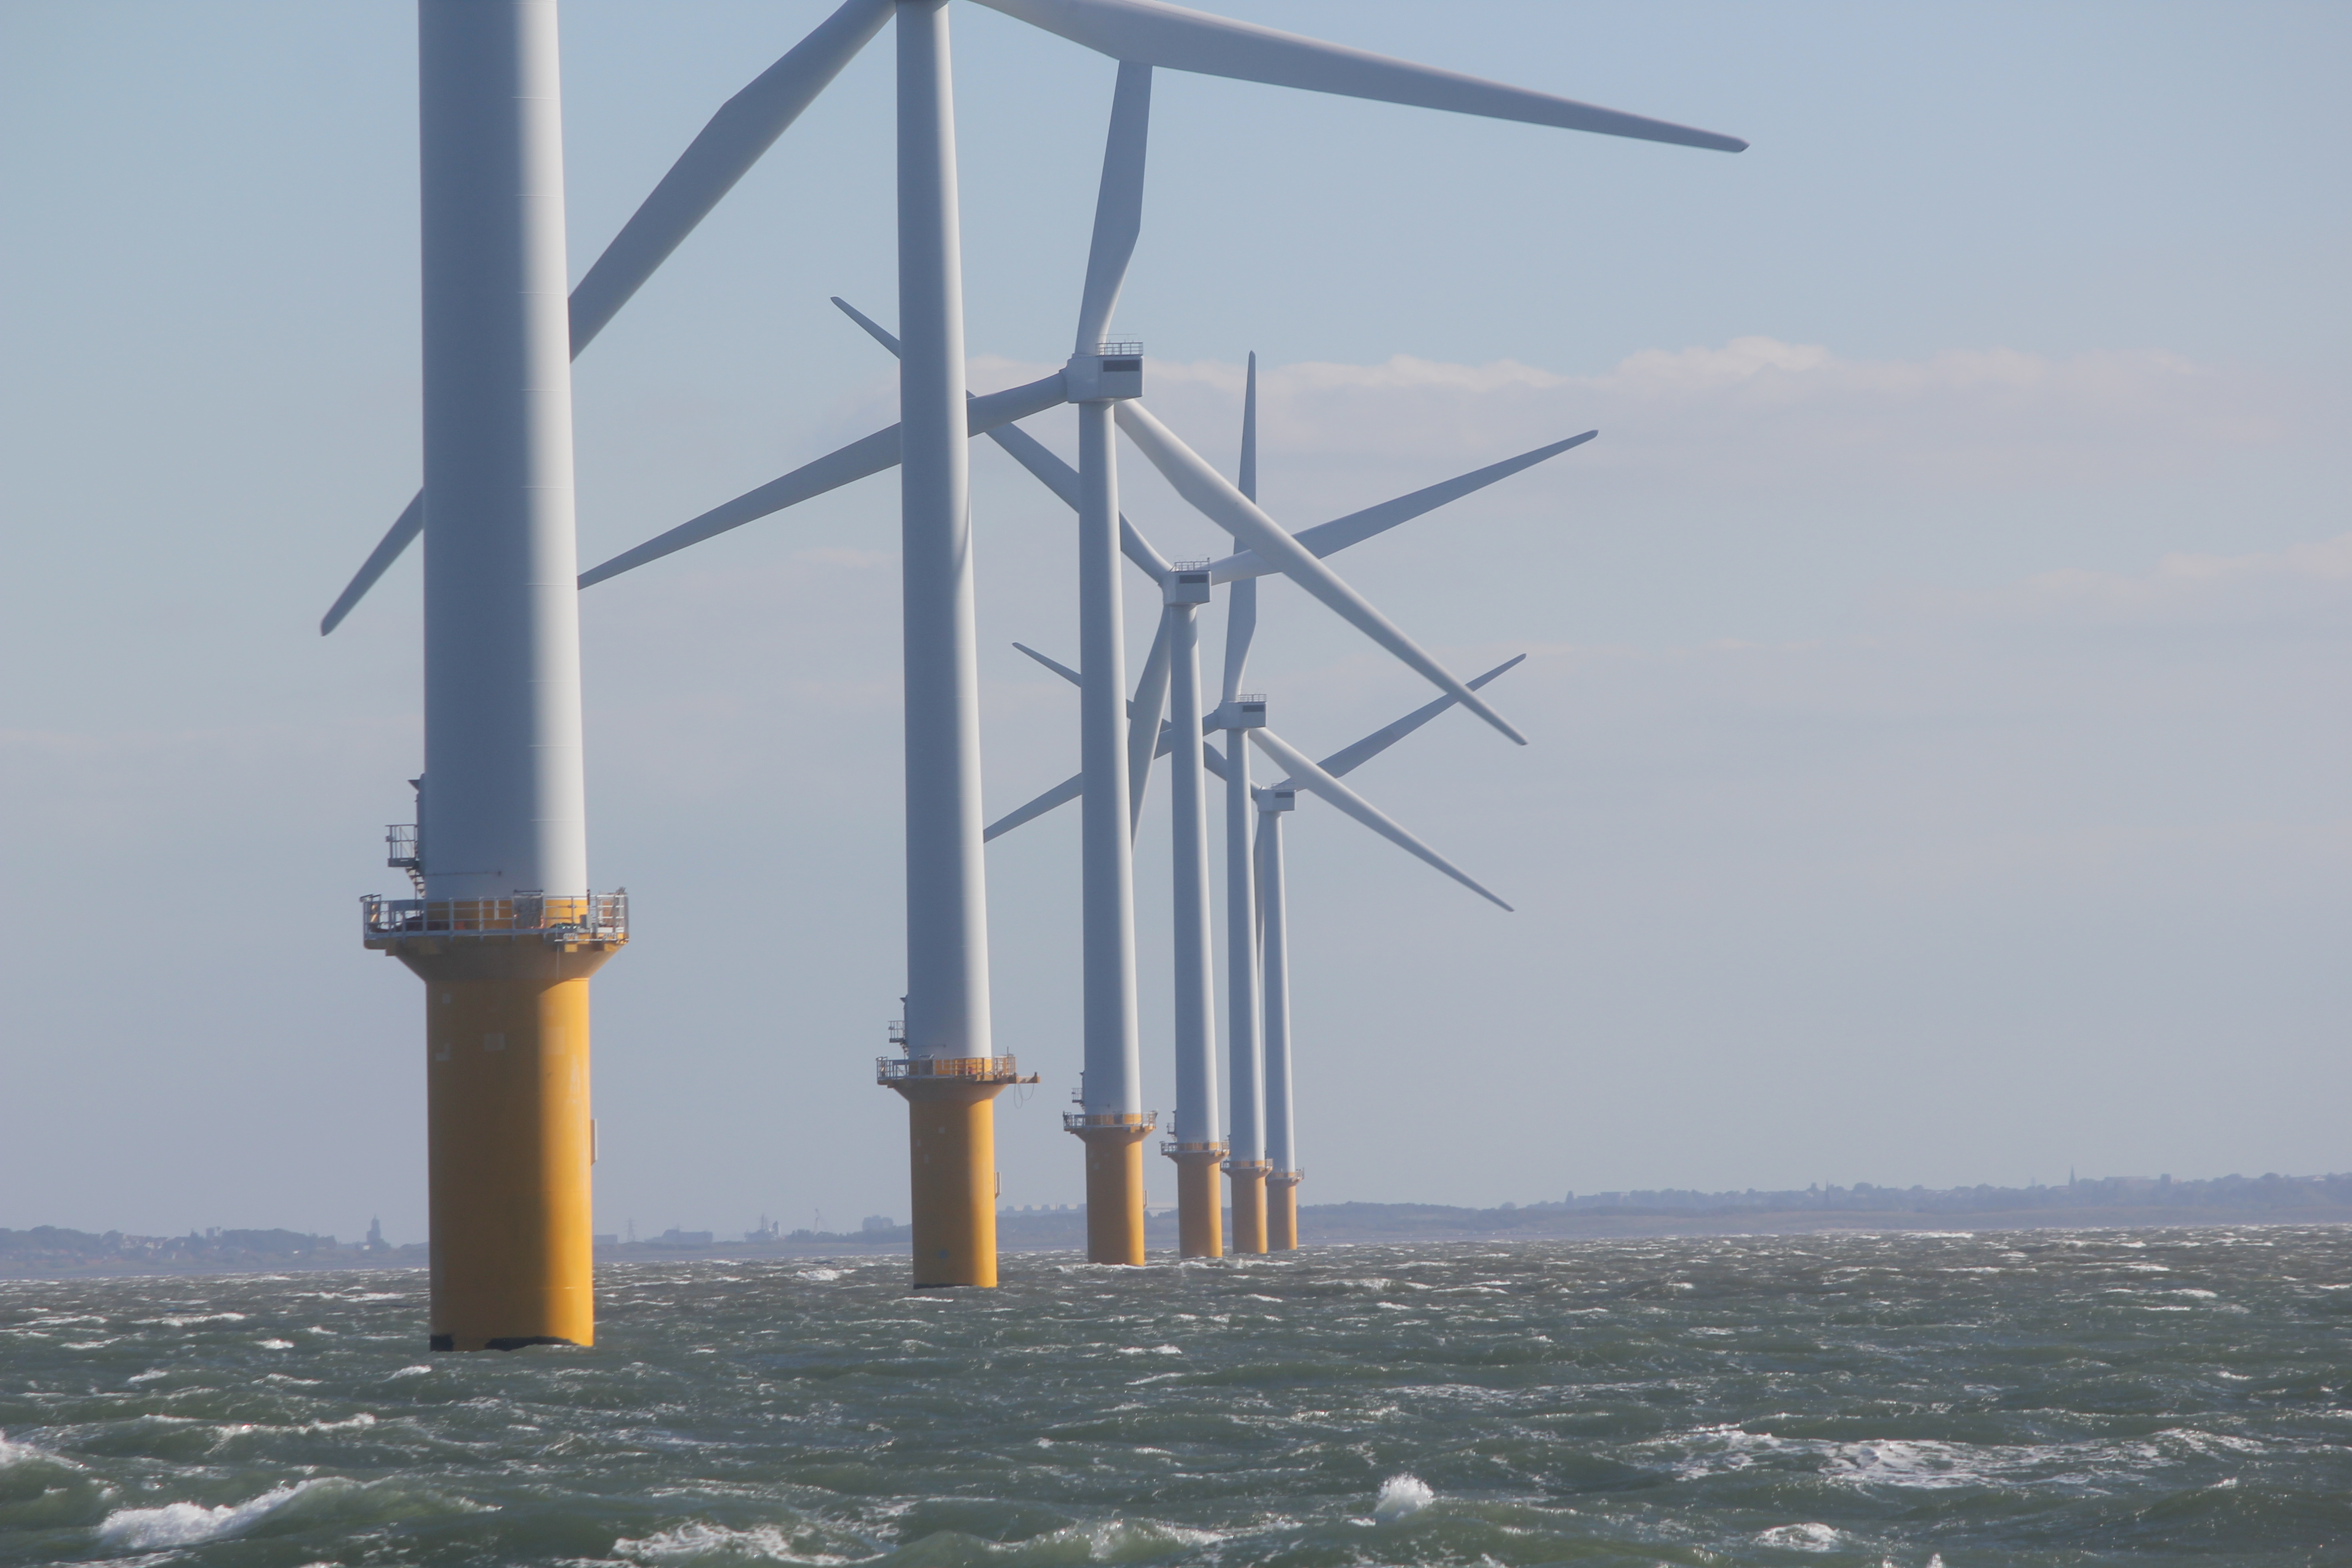 fshore Wind Energy is Booming in Europe Yale E360